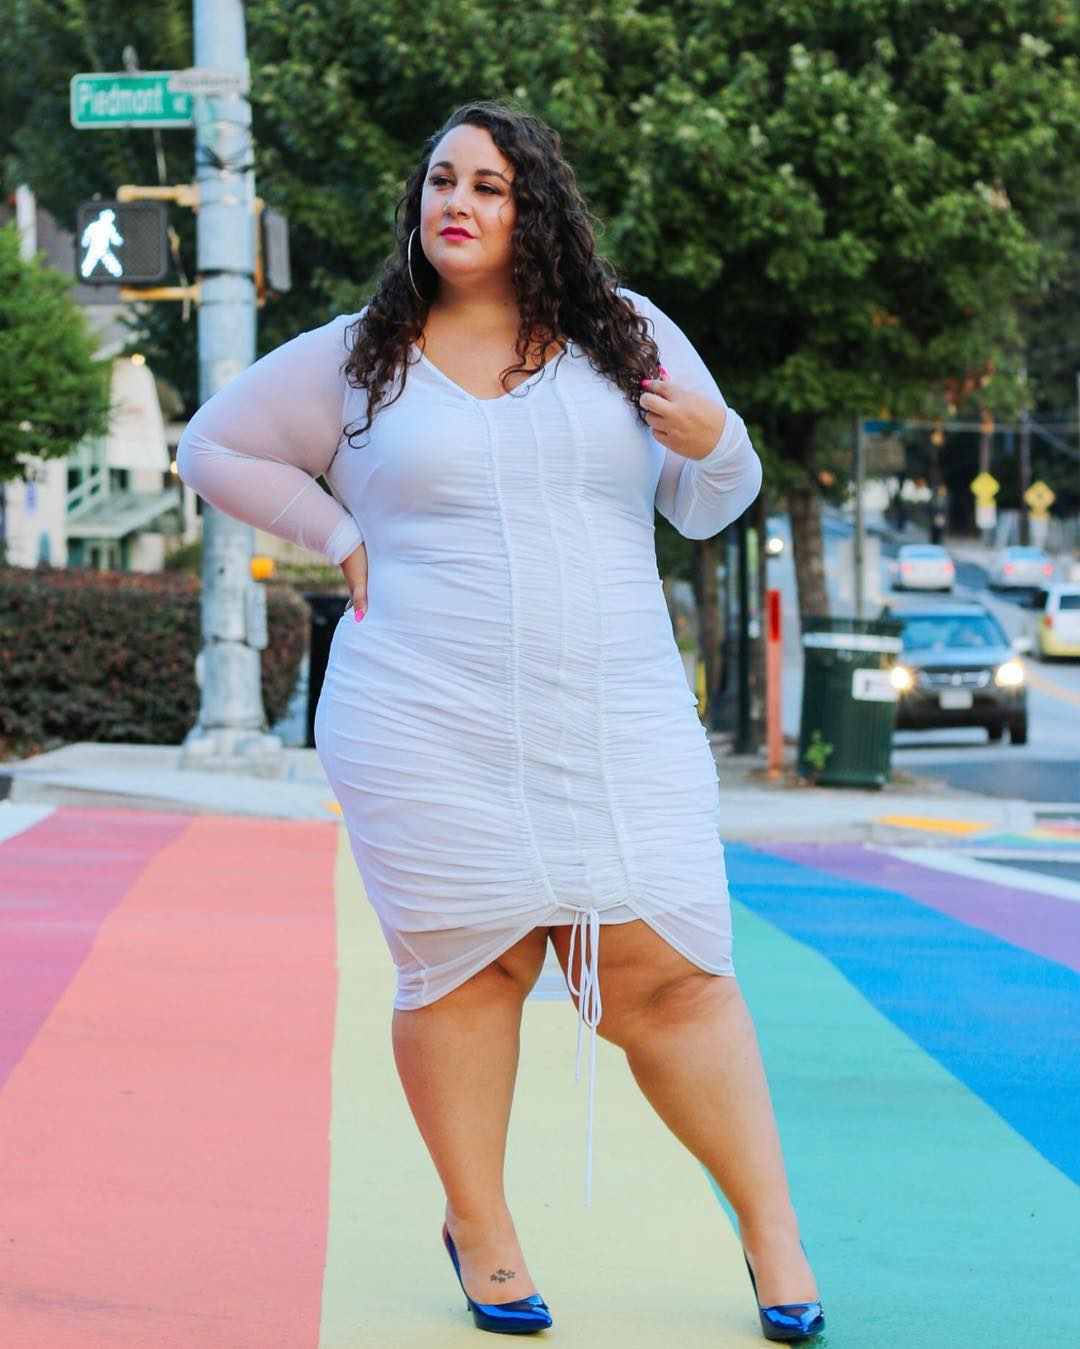 Alysse Dalessandro   is a queer plus size fashion blogger based in Cleveland, Ohio. Her passion for social change drives much of her content.